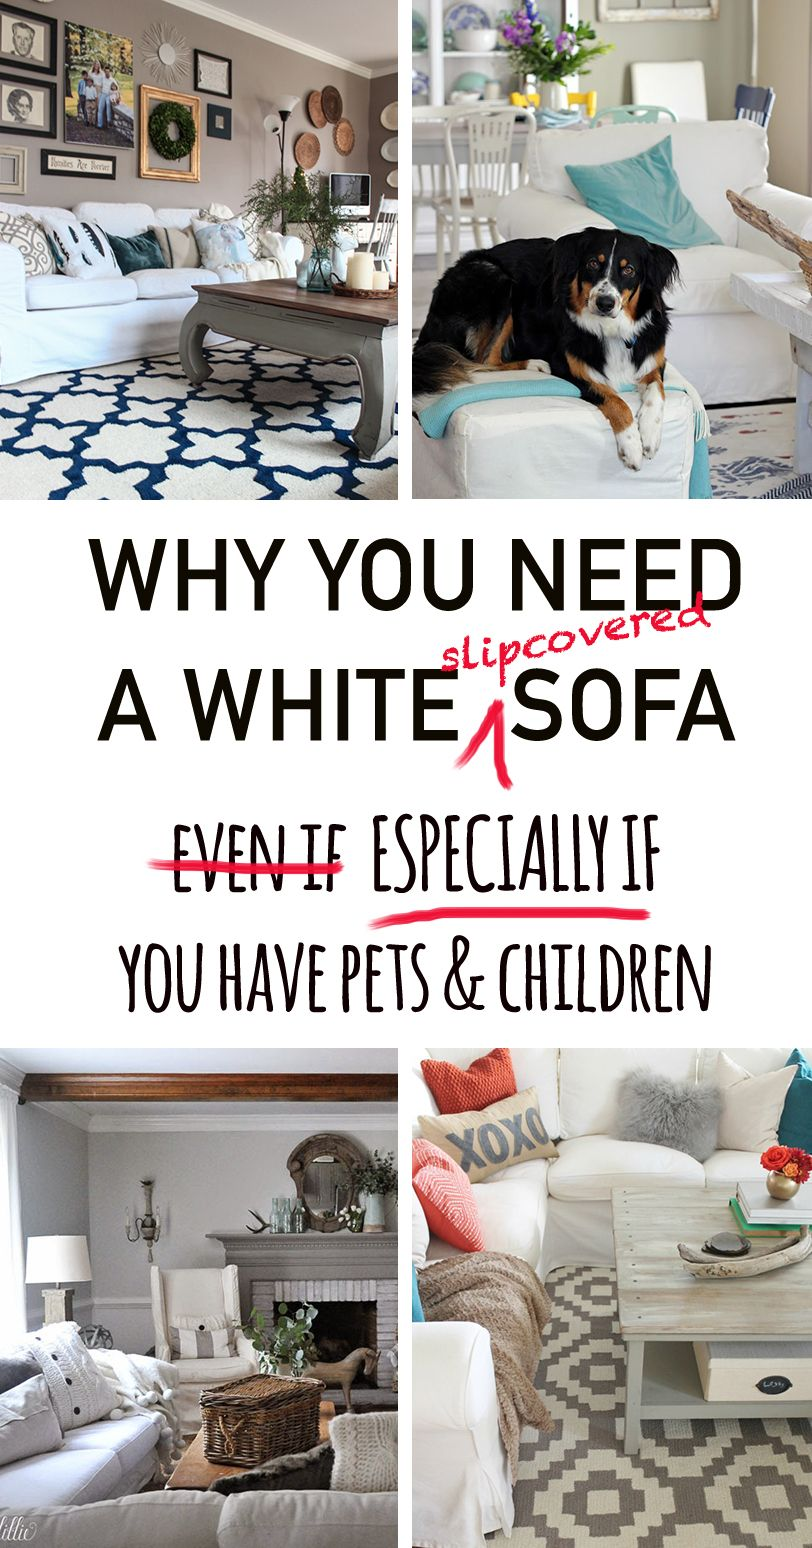 Attractive Why White Slipcovers Work Best With Many Design Styles And Tips On How To  Keep Them White With Children And Pets.